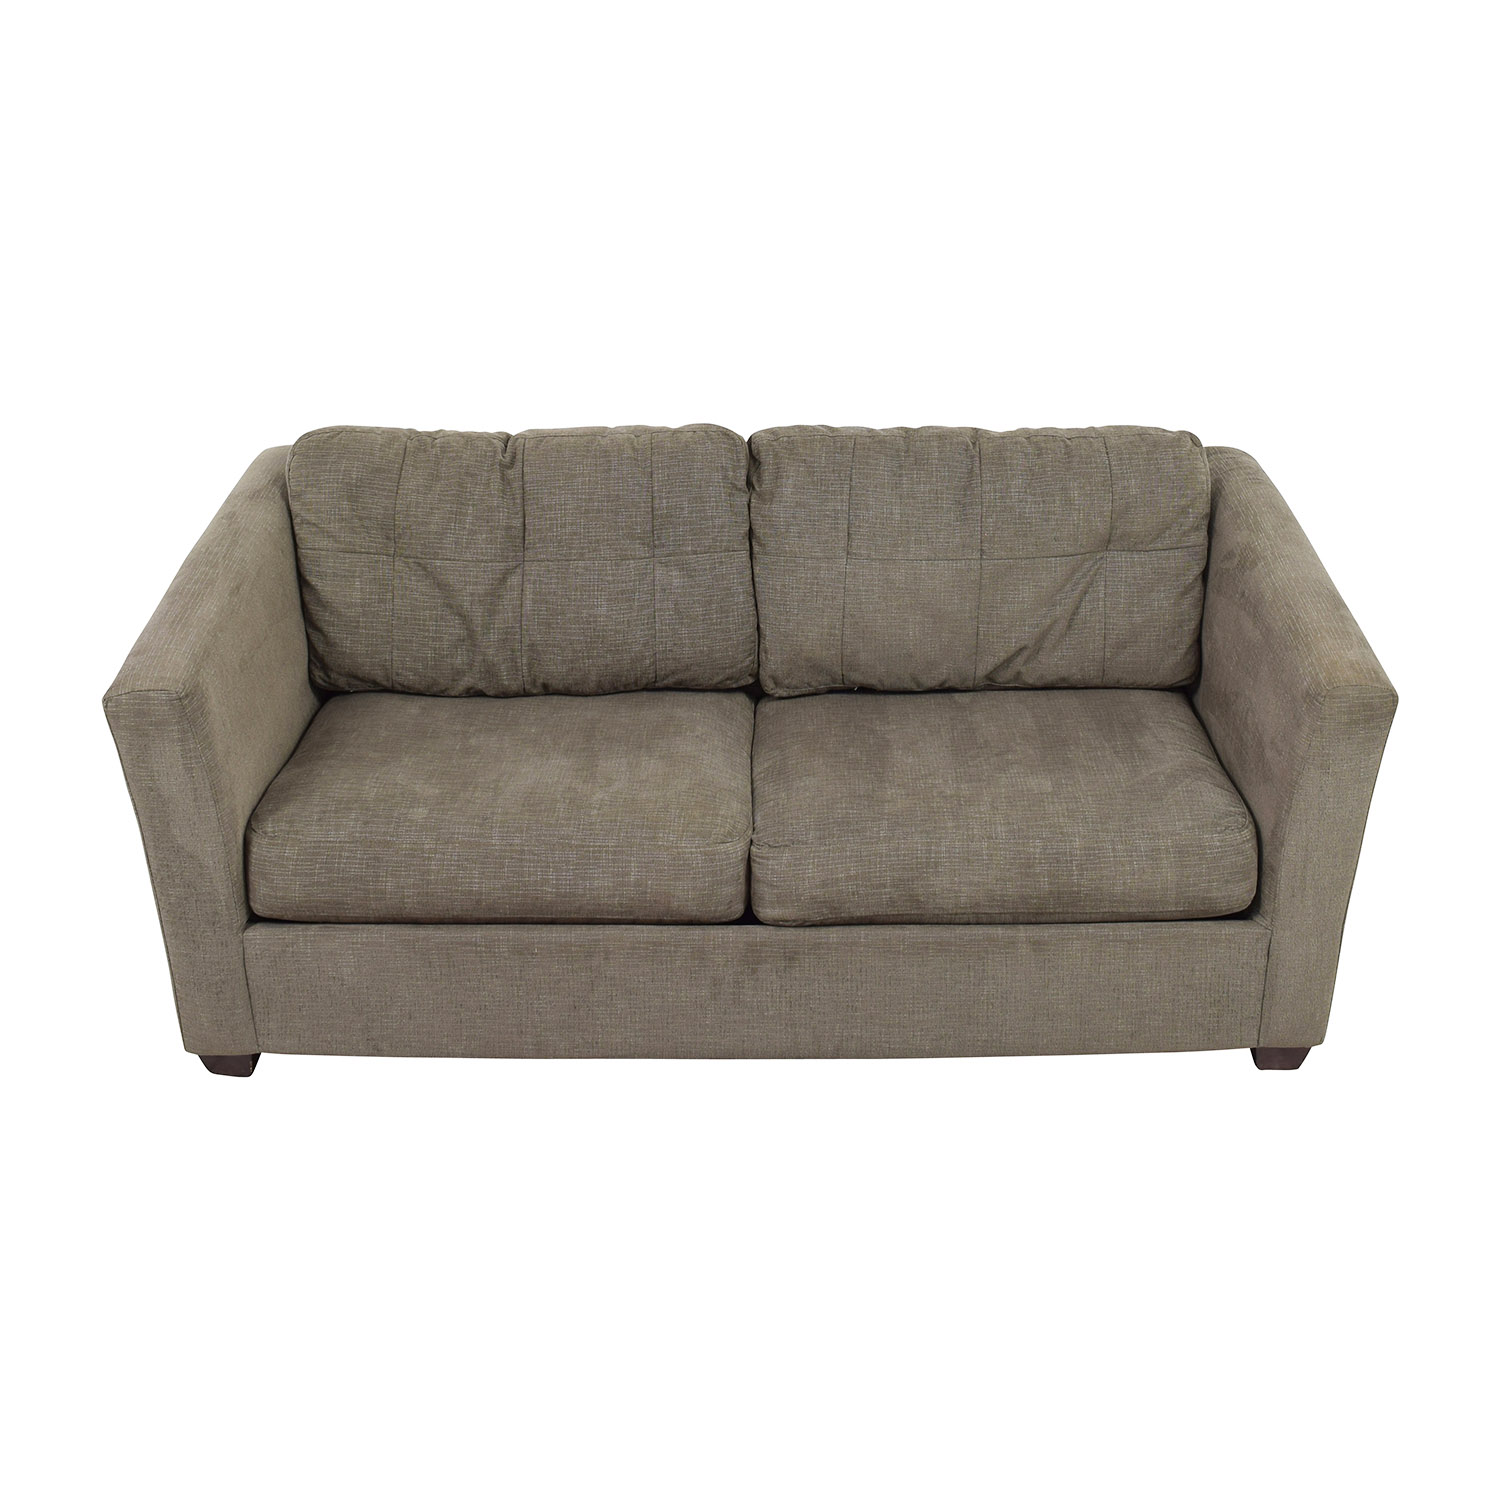 Bauhaus sleeper sofa 20 absolute bauhaus sleeper sofa for Bauhaus sectional sleeper sofa